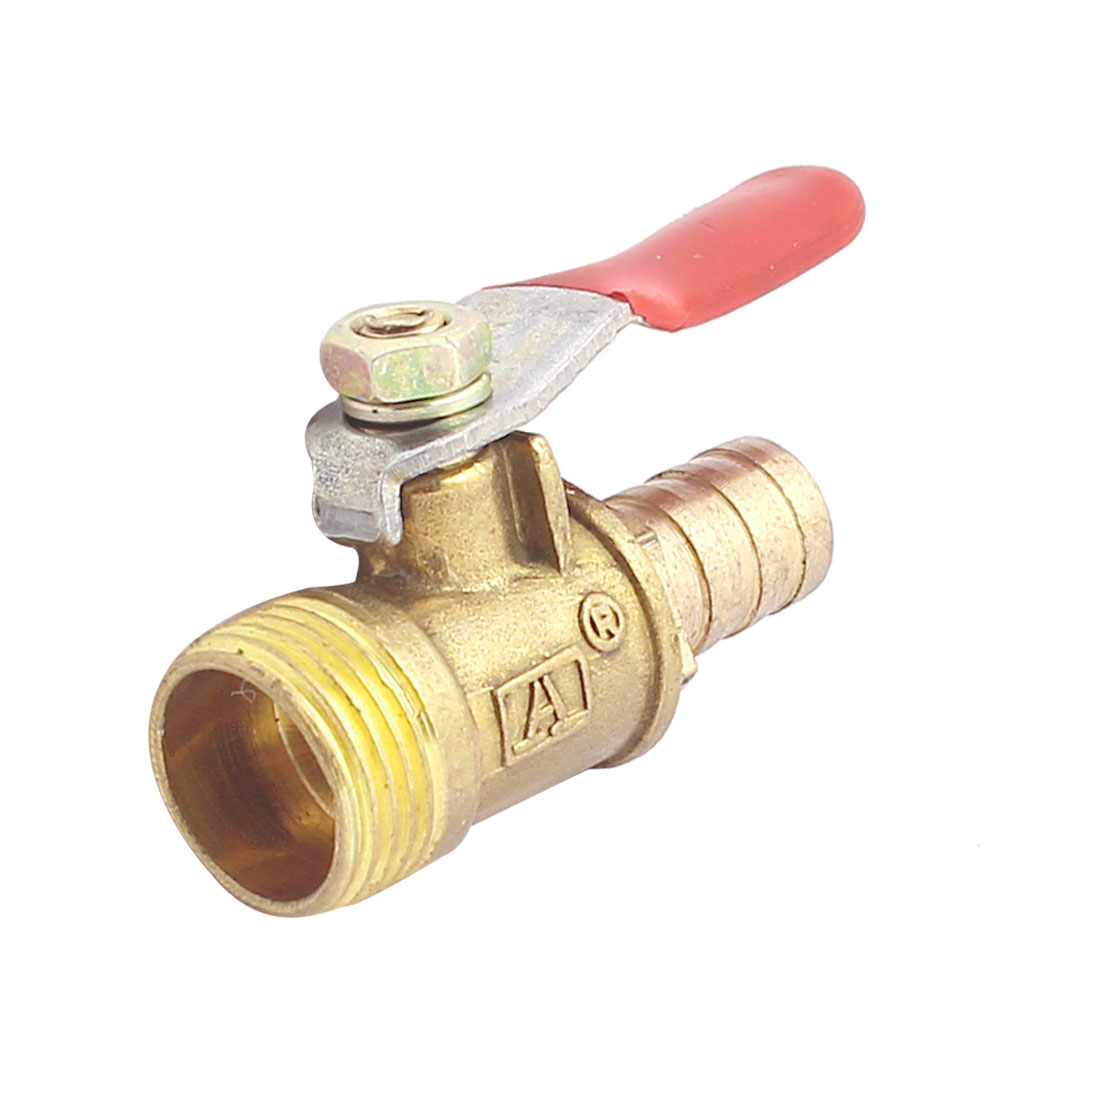 Water Coal Gas 3/8BSP Threaded 10mm Barb Brass Ball Valve